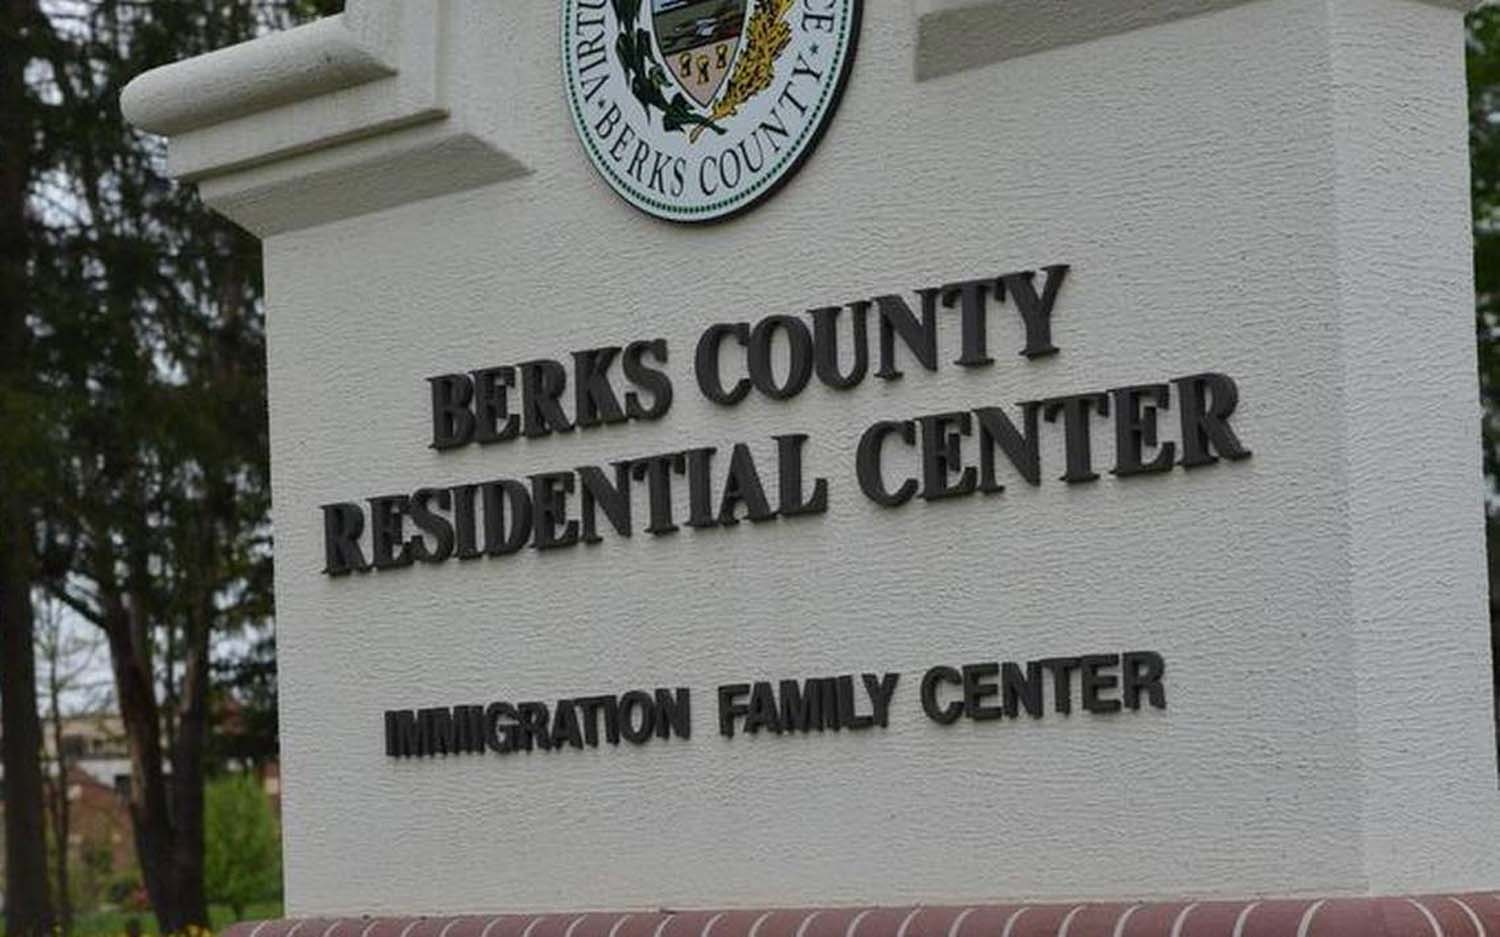 Berks County Residential Center is one of three family detention facilities in the country in which ICE detains undocumented immigrant families.